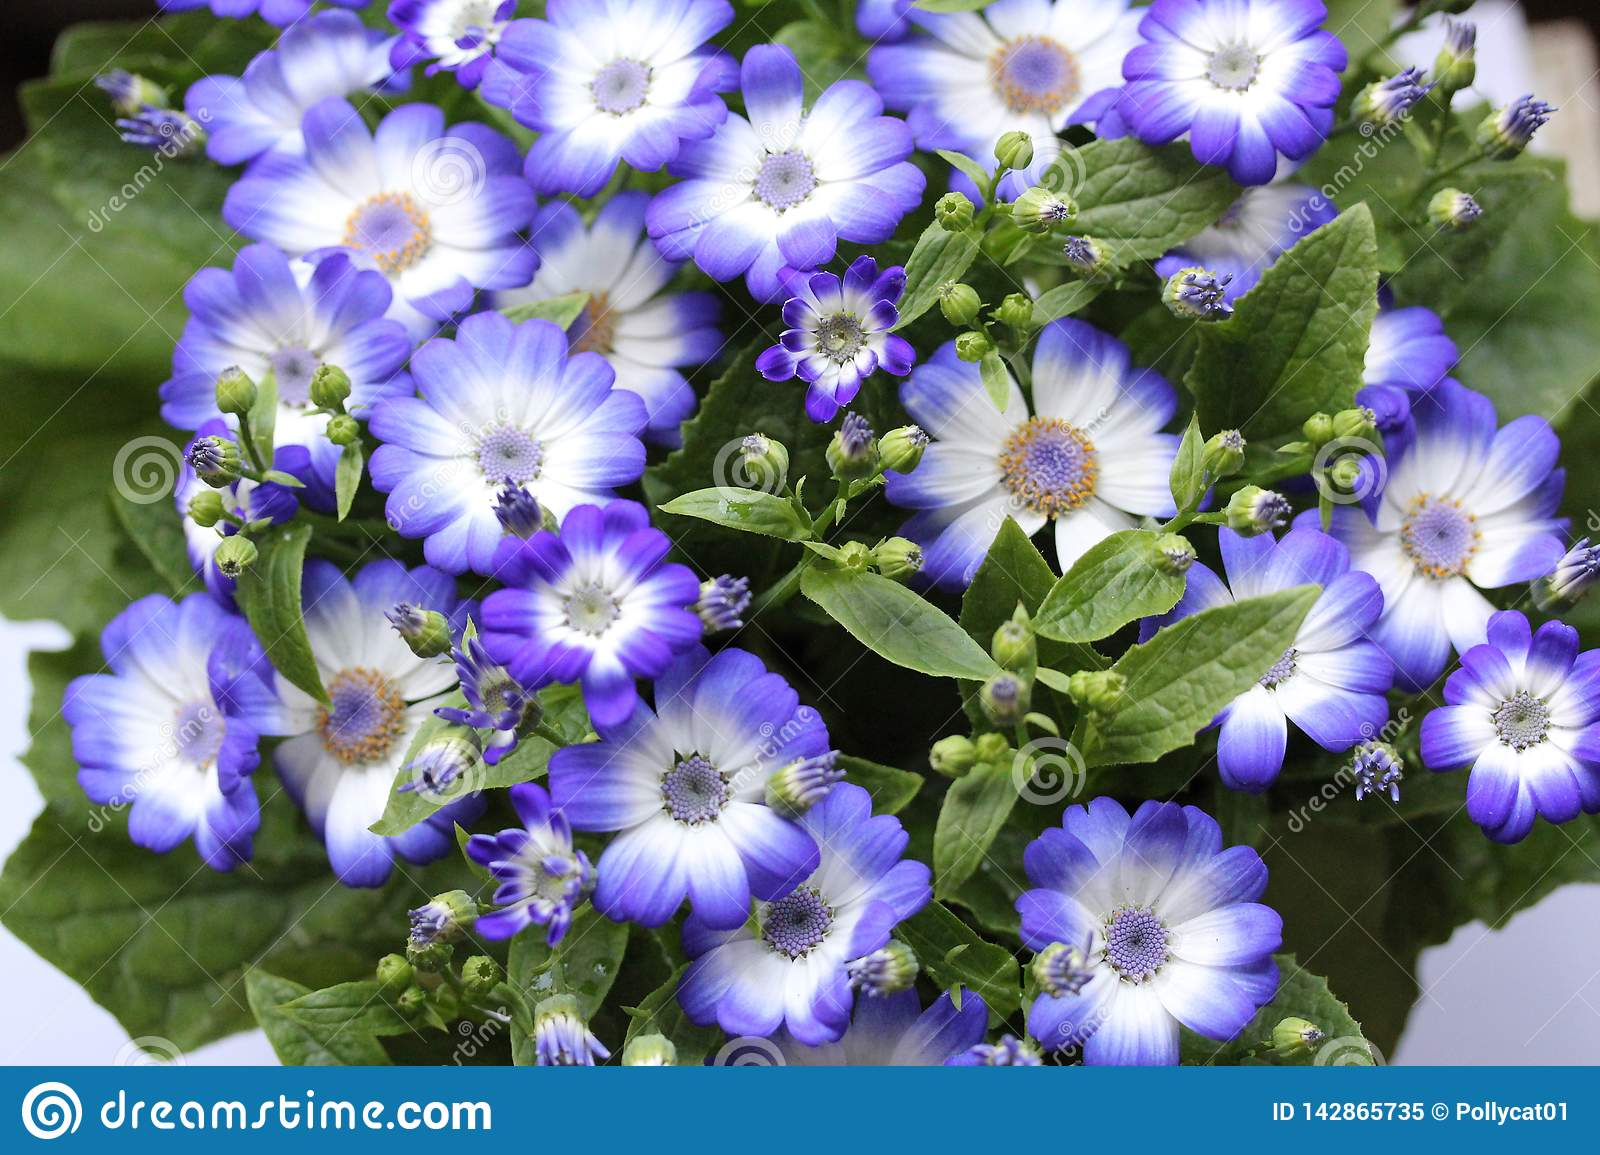 Blue flowers in the home garden 6